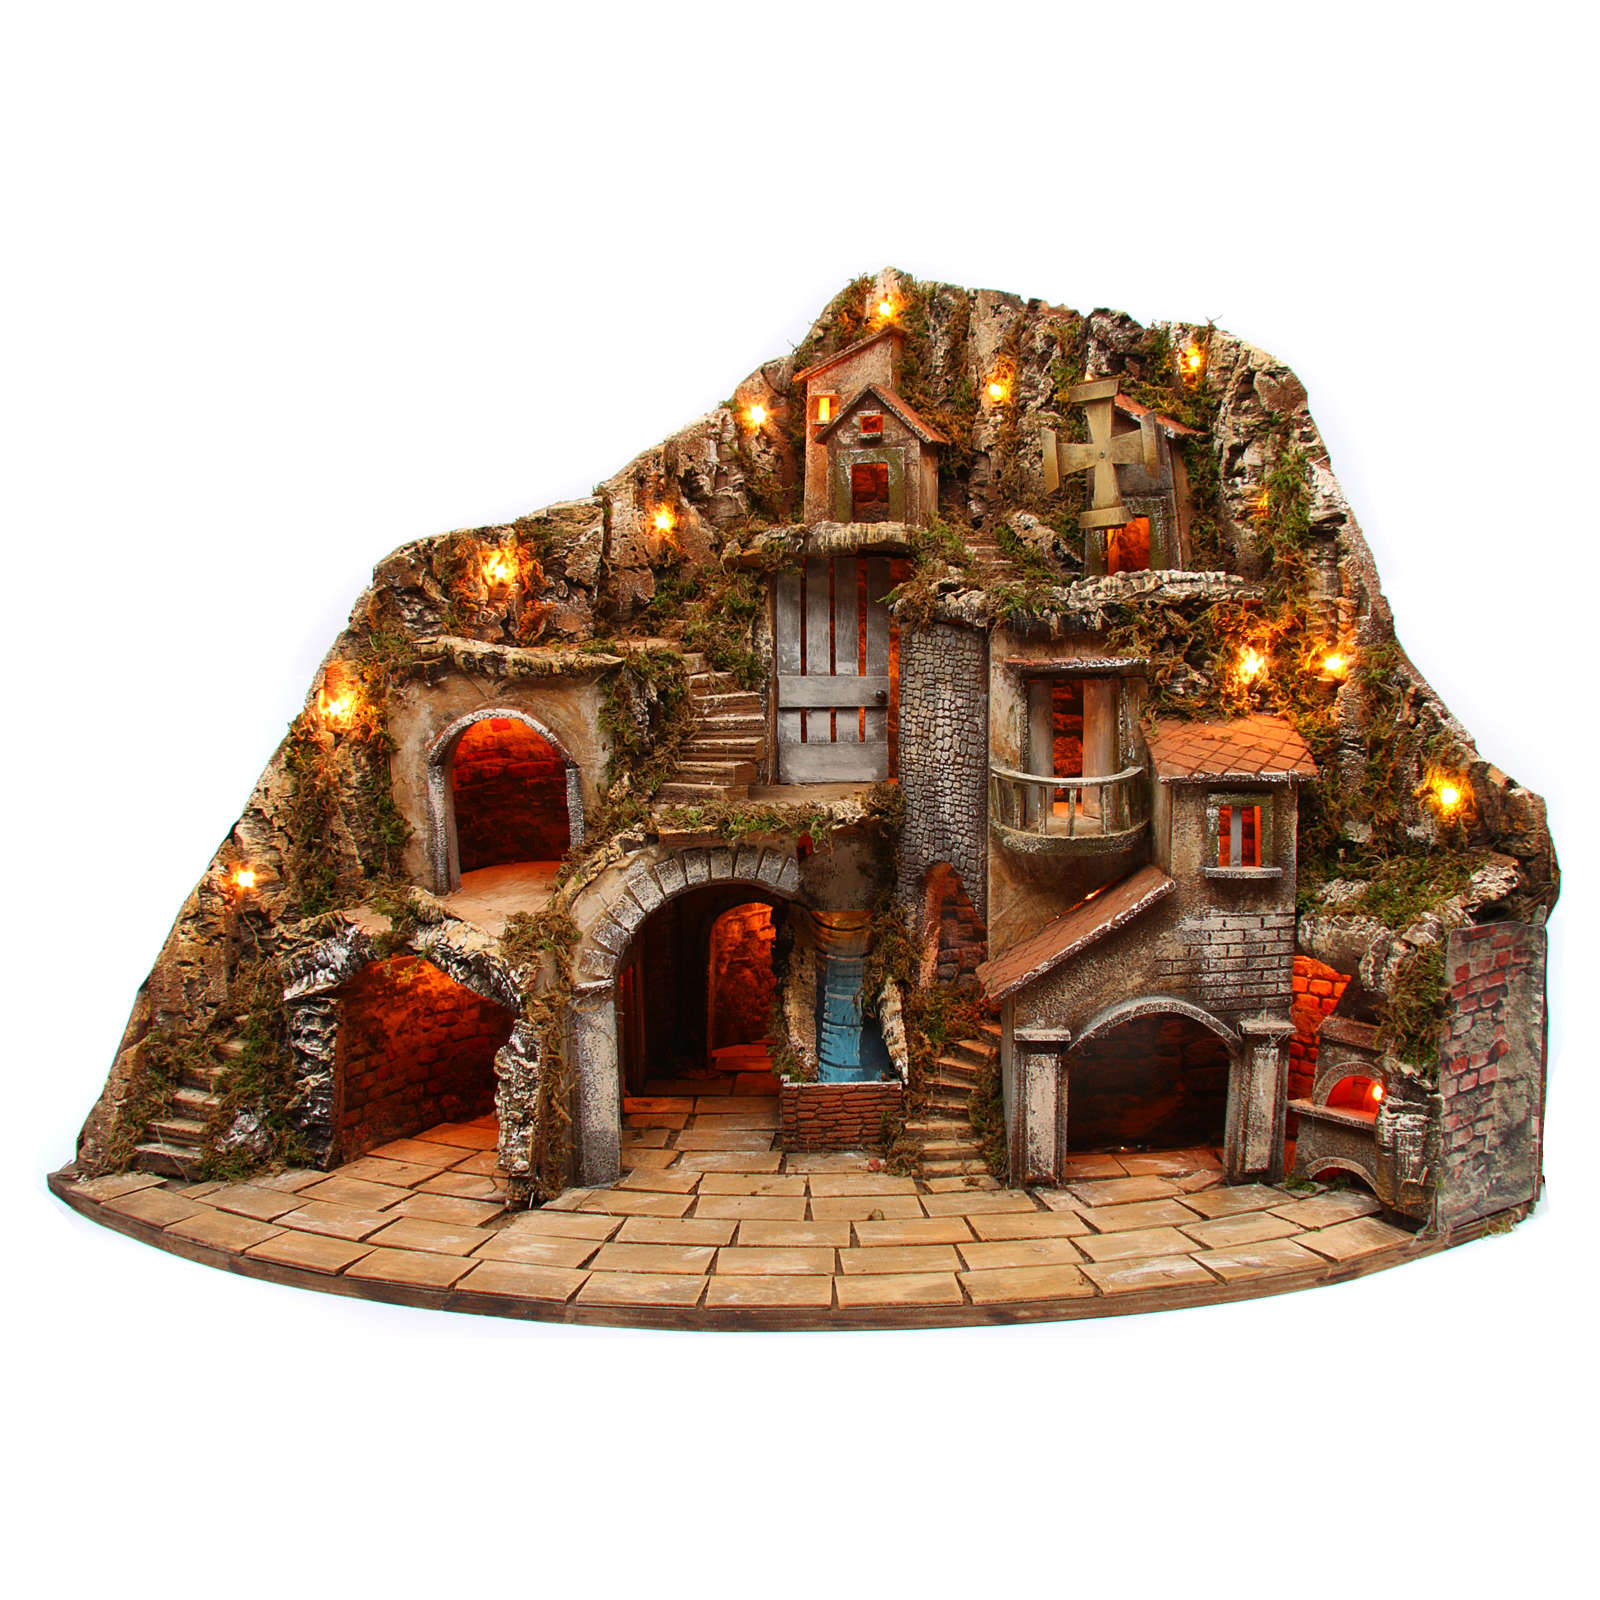 Village for Neapolitan Nativity scene with fire, lights, fountain and mill 75x105x80 cm 4